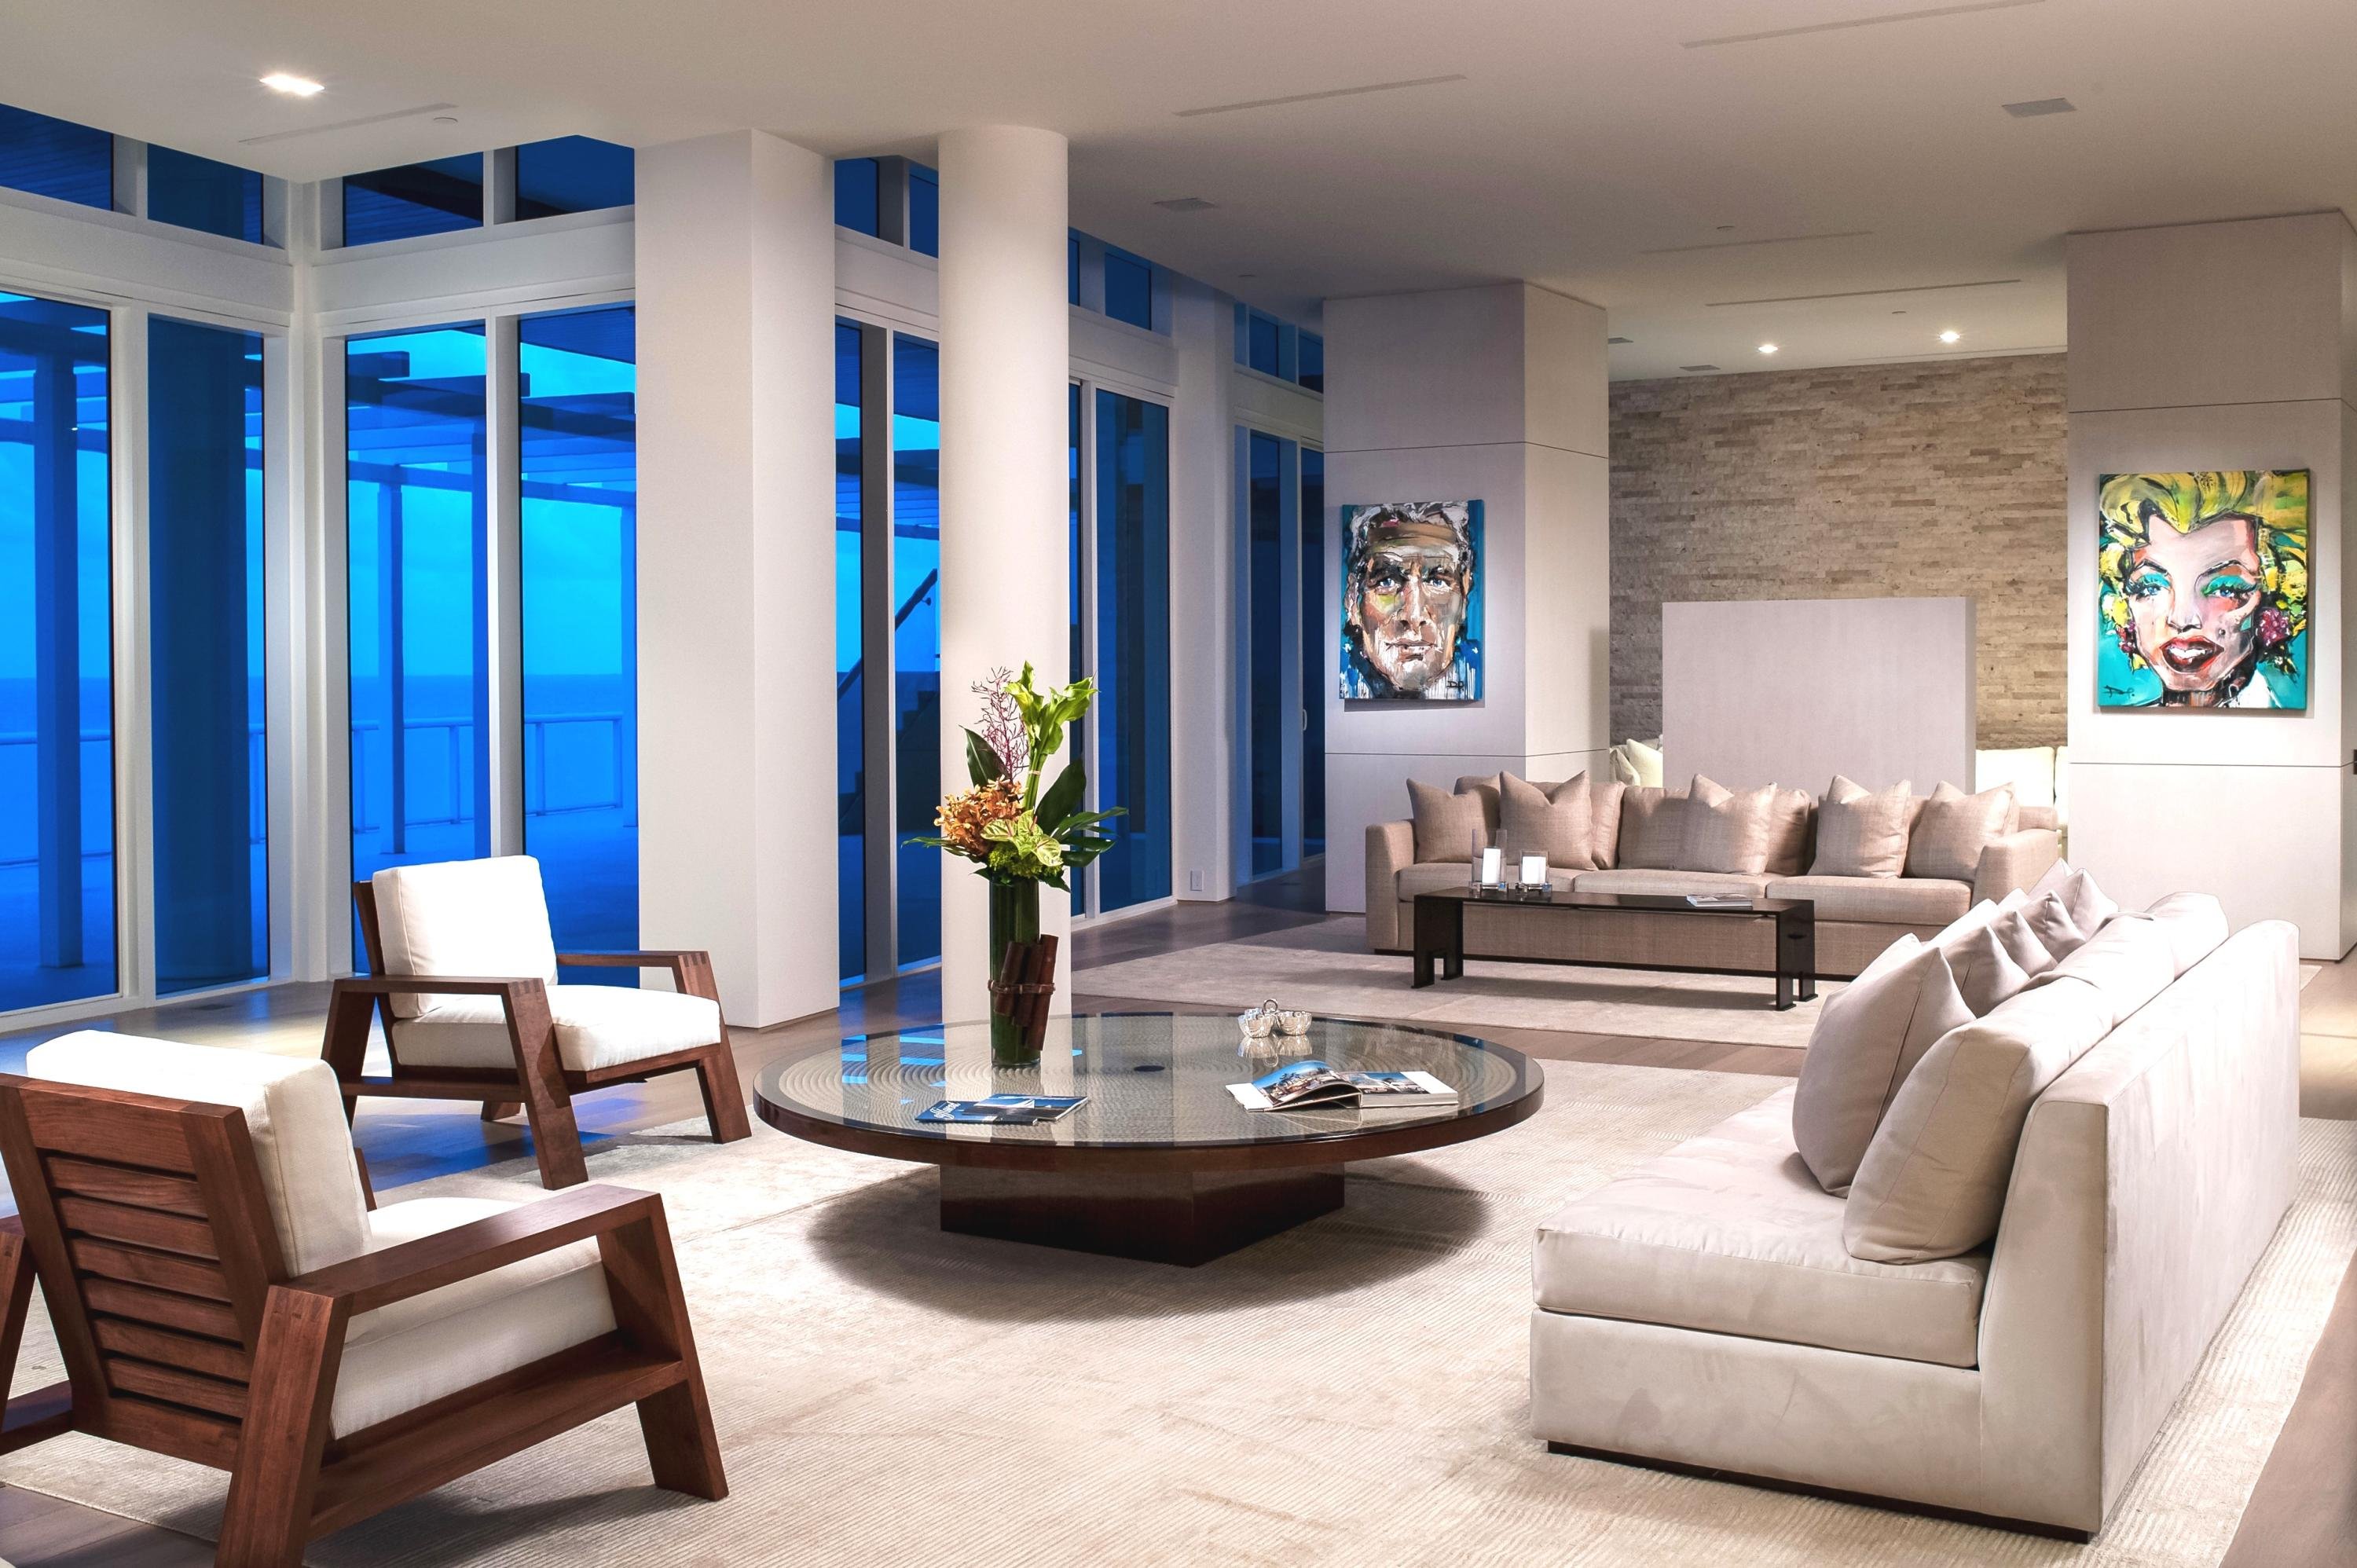 The breathtaking Ocean Penthouse at One Thousand Ocean in Boca Raton, a contemporary masterpiece unlike any property in South Florida, elevates the residential experience to the pinnacle of elegance and luxury. The largest condominium in Palm Beach County, at 11,000 square feet overall, this four-bedroom oasis offers dramatic views of the Atlantic Ocean to the east and the Intracoastal Waterway to the west.Beautifully designed and appointed to an exceptional bespoke standard, this one-of-a-kind penthouse embodies the spirit of distinction by incorporating exquisite materials sourced from around the world throughout its living spaces. Soaring ceilings and an open floor plan, along with a chic European palette of natural hues, add to an ambience that's both sophisticated and inviting A generous entertaining area includes a spacious dining room and family room, as well as a gourmet, state-of-the-art kitchen with Sub-Zero and Miele appliances, and European cabinetry. The penthouse also features a laundry room (with secondary access for staff), a glass-enclosed office and a breakfast room. The emphasis on superior quality and detailed craftsmanship reveals itself at every turn, from subtle design touches to elegant oak flooring to the Calcutta marble and Dornbracht fixtures in the master bath (one of five full baths, along with one half-bath). Floor-to-ceiling sliding glass doors open to a staggering 4,000 square feet of outdoor space (to go with 7,000 square feet of interior space) and, of course, the breathtaking views of the turquoise sea and South Florida skyline.  One Thousand Ocean, designed by award-winning Garcia Stromberg Architects, is recognized as one of Florida's most prestigious, secure and private addresses, comprised of 52 residences and villas. Those fortunate enough to call this penthouse a home will also benefit from a membership to the Boca Raton Resort & Club, a Waldorf Astoria property, offering world-class leisure, spa and entertainment facilities,